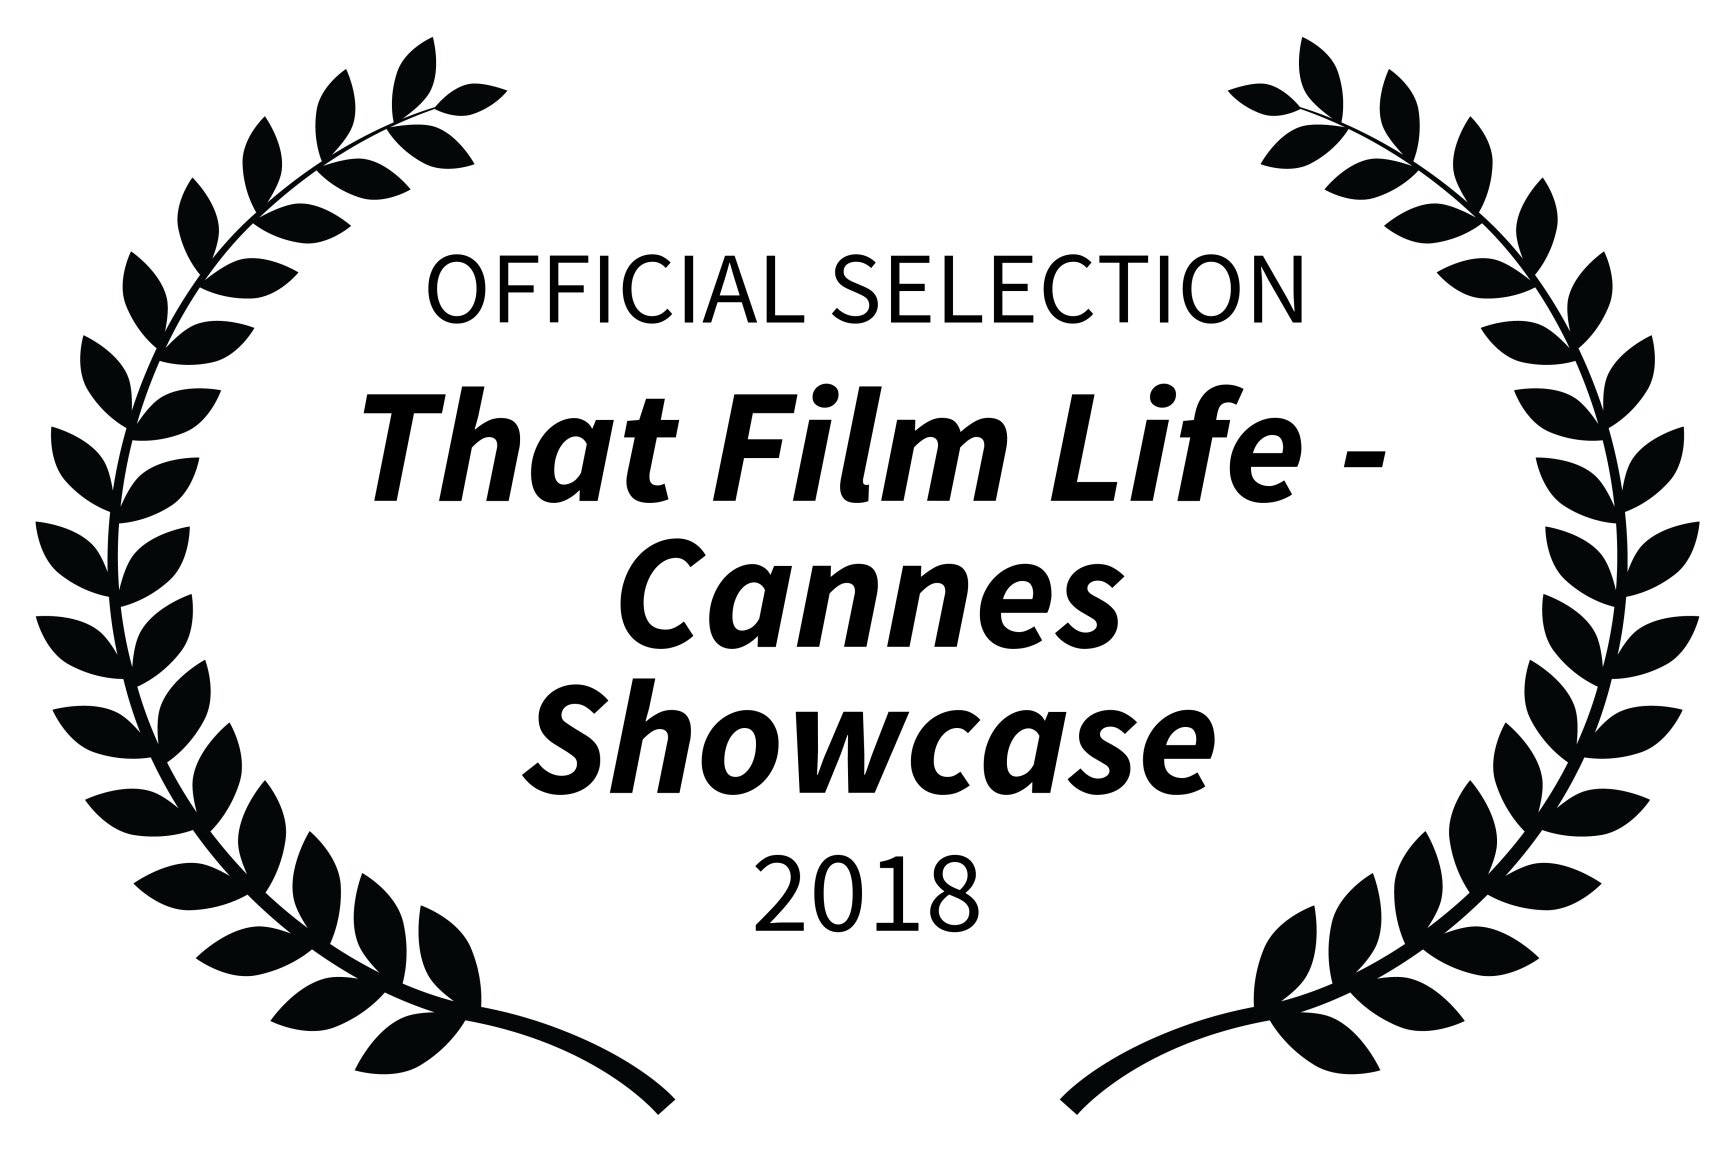 OFFICIAL SELECTION - That Film Life - Cannes Showcase - 2018